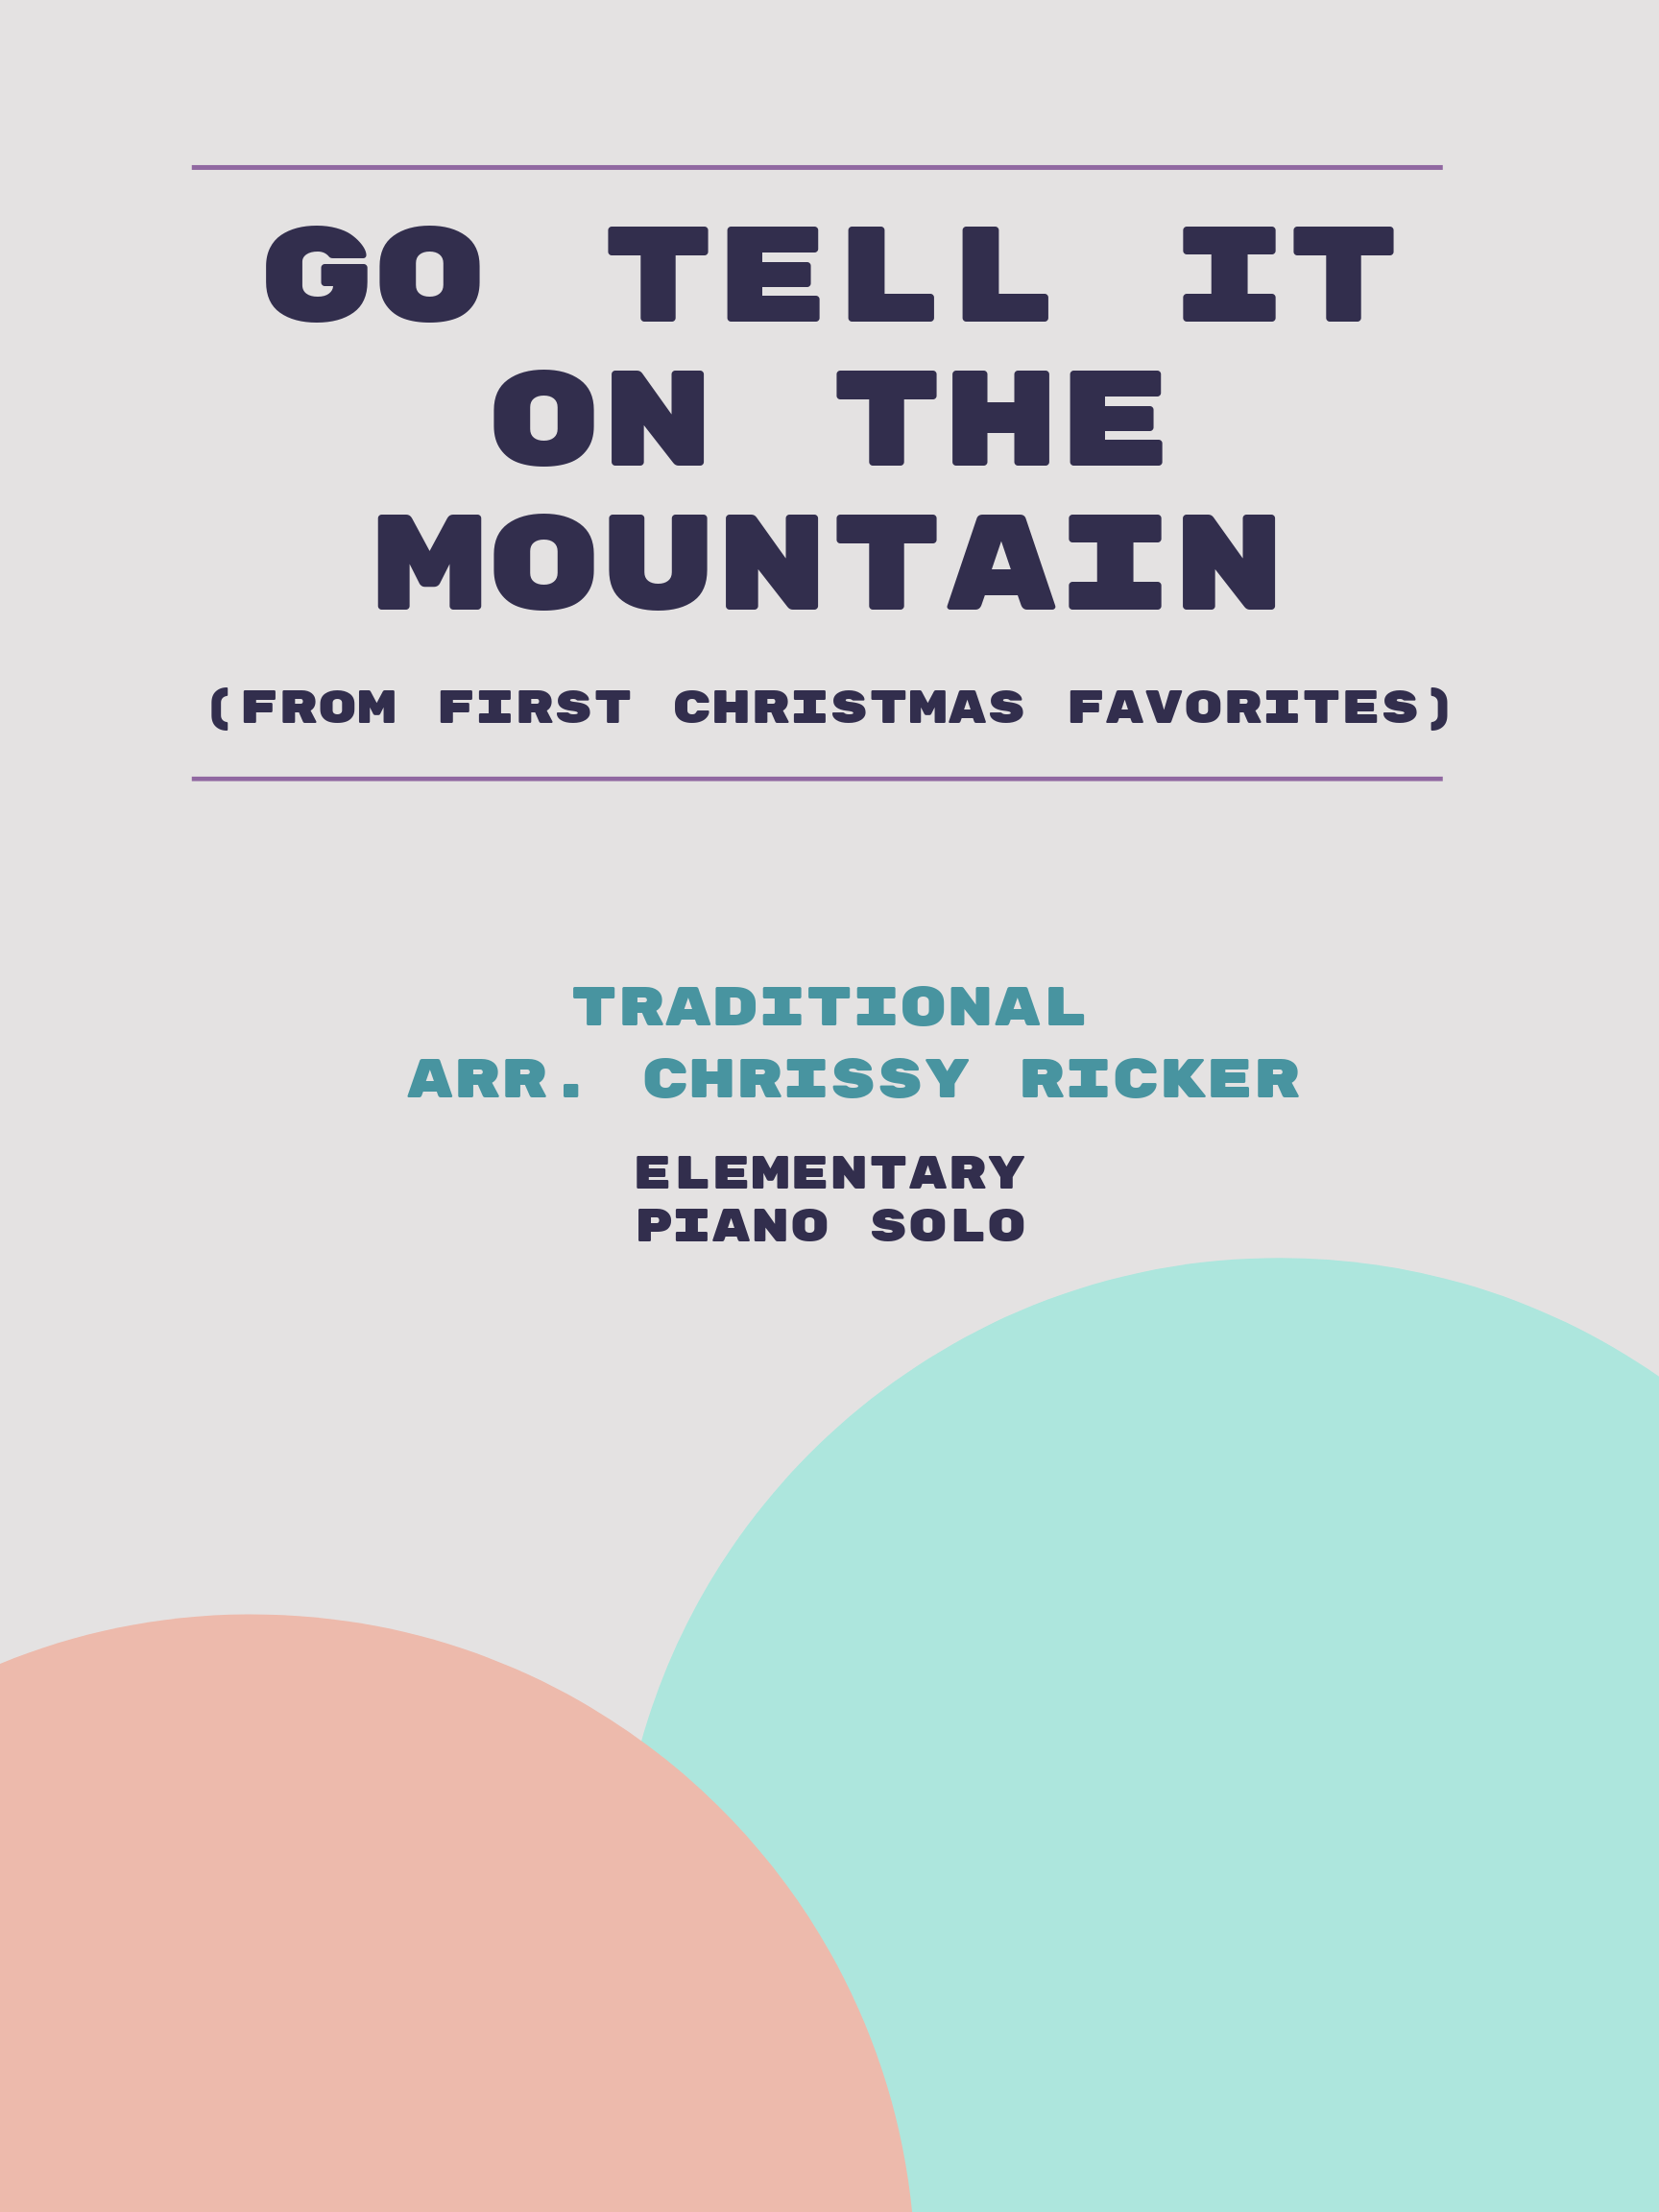 Go Tell it on the Mountain by Traditional